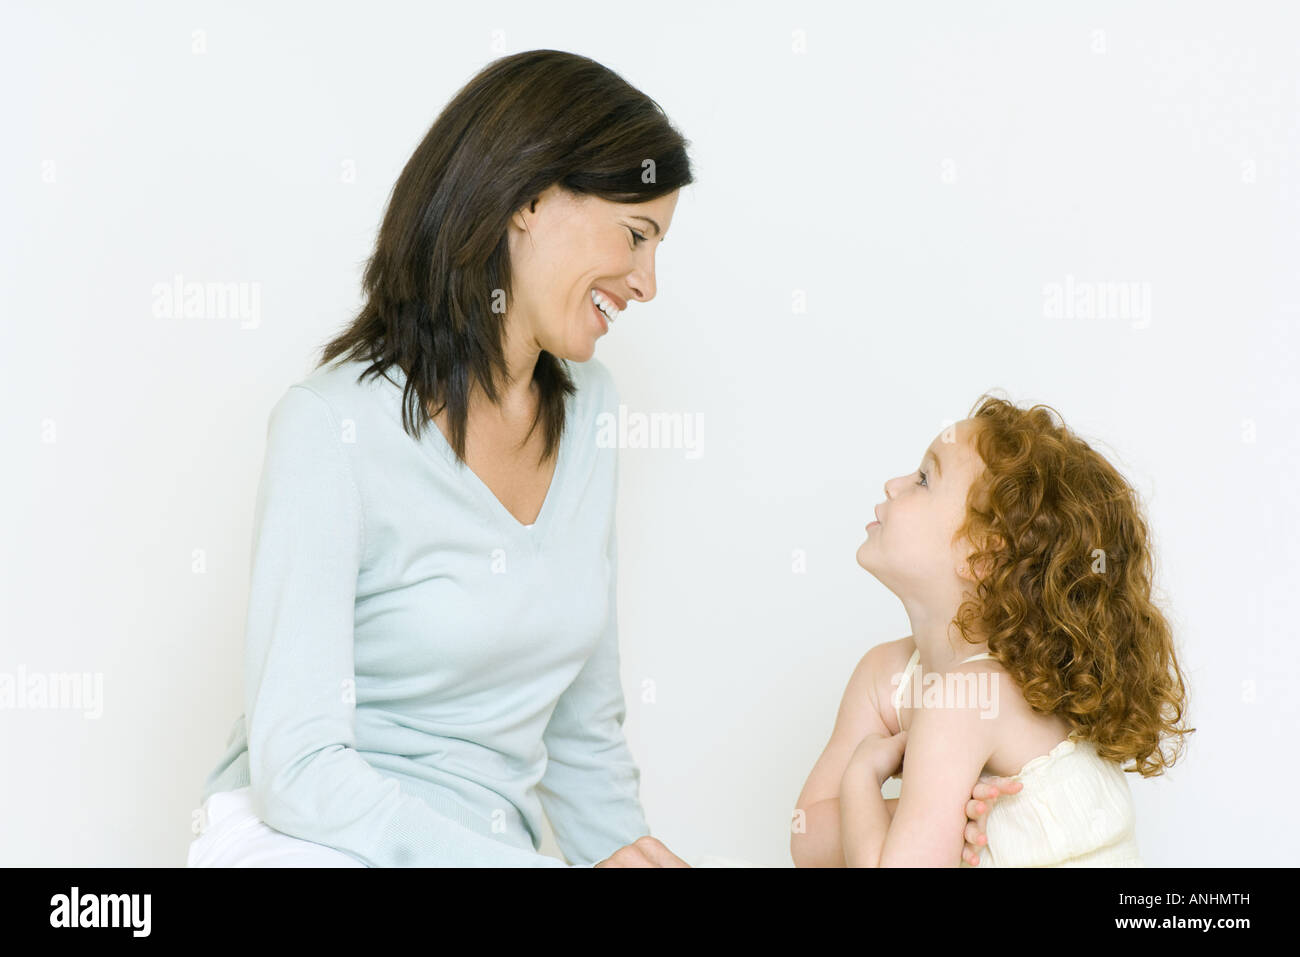 Woman and little girl having discussion, smiling - Stock Image